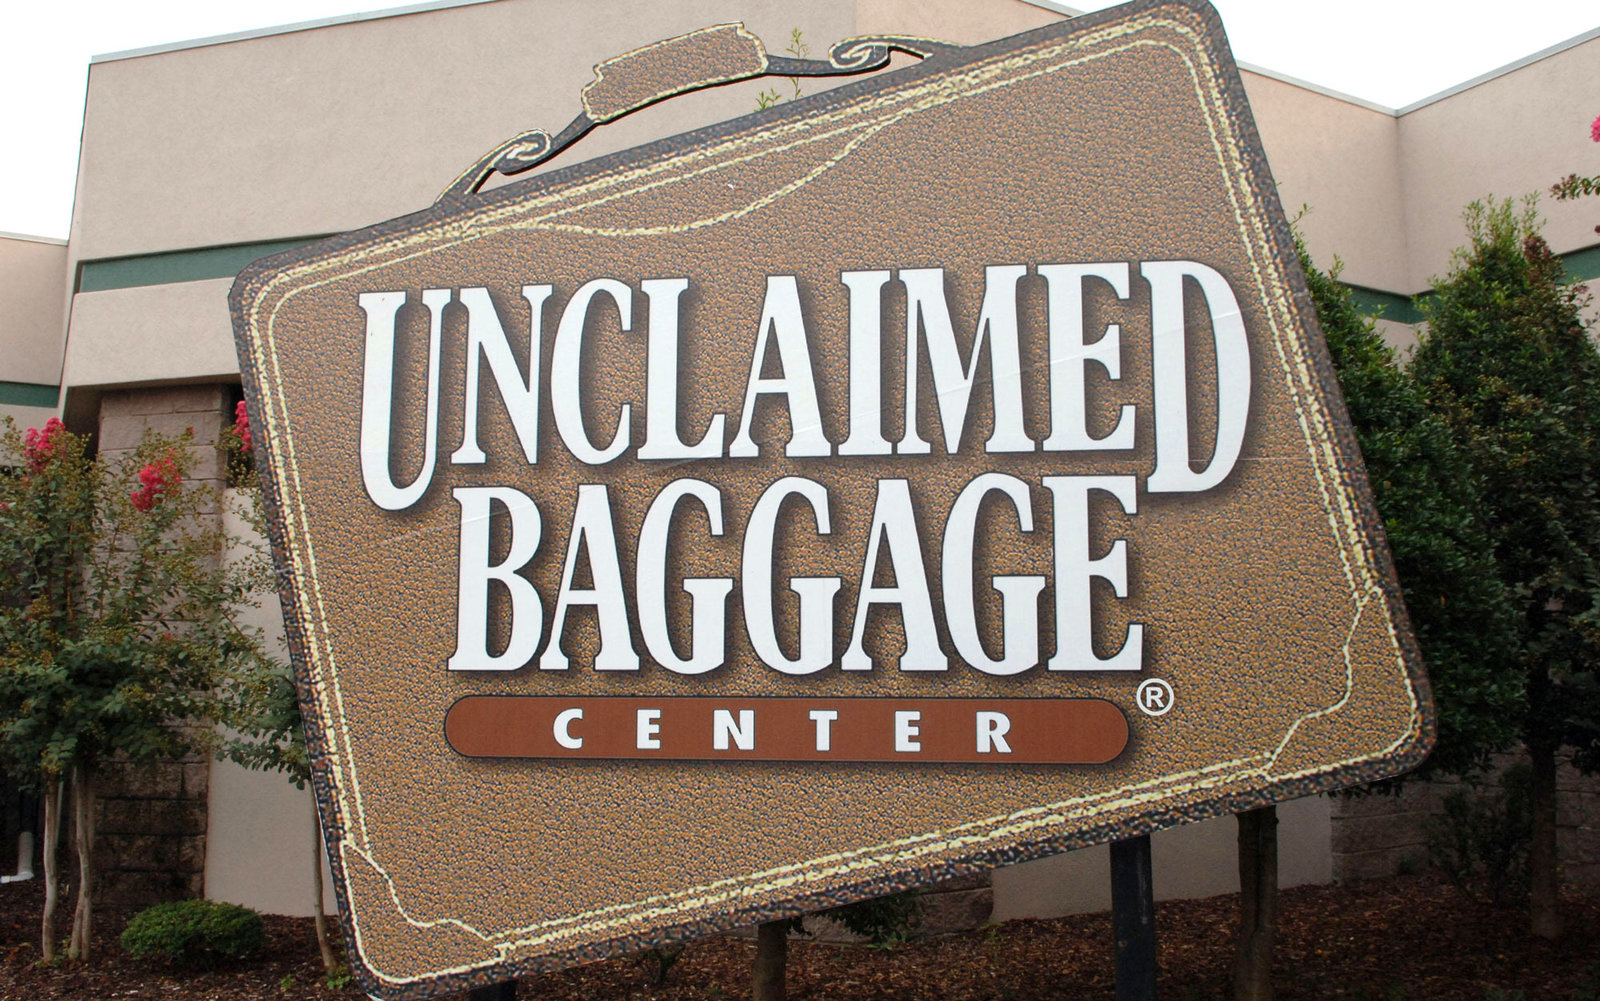 Weird Roadside Attractions America Unclaimed Baggage Center Alabama